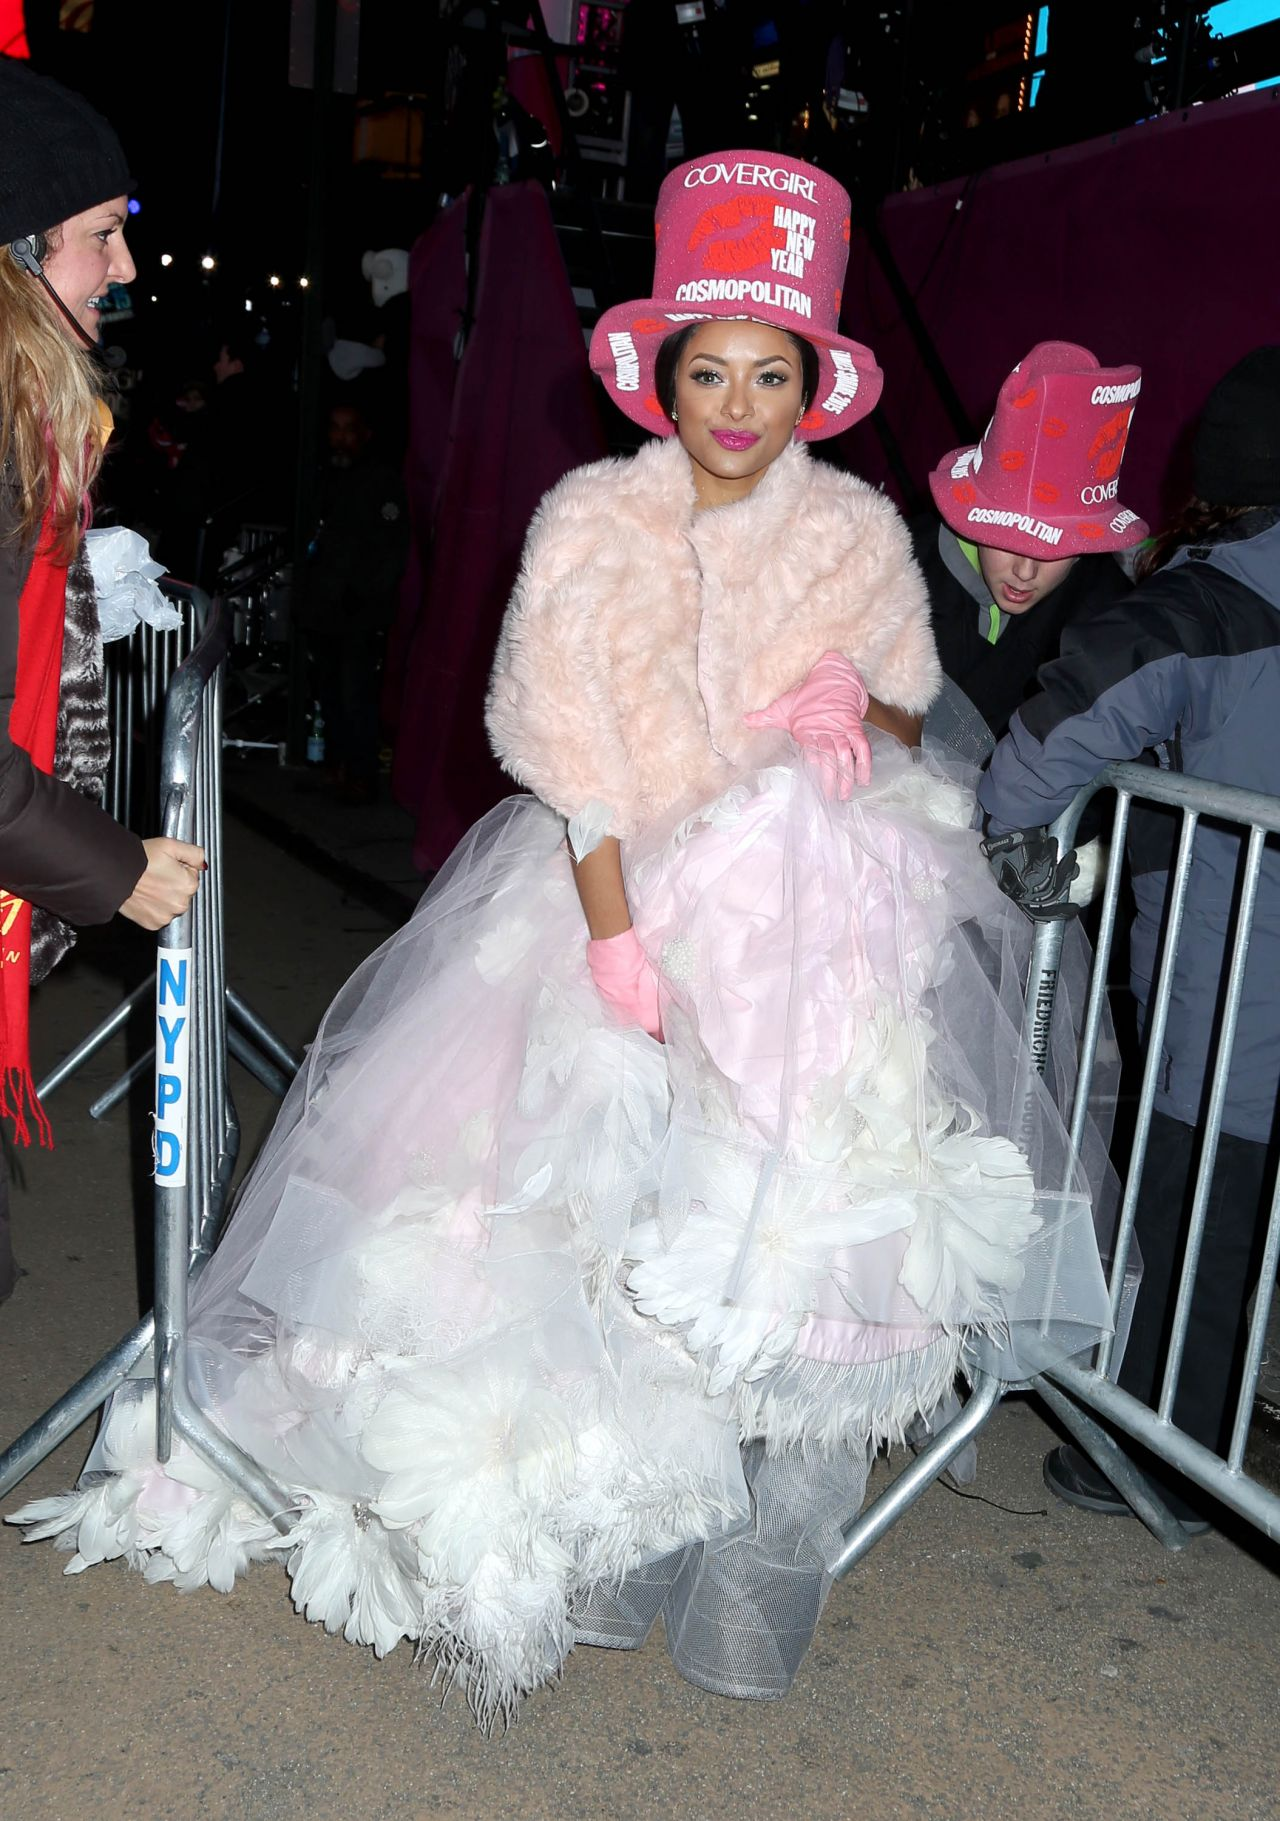 Kat Graham - New Year Eve 2015 at Times Square with Cosmopolitan in NYC